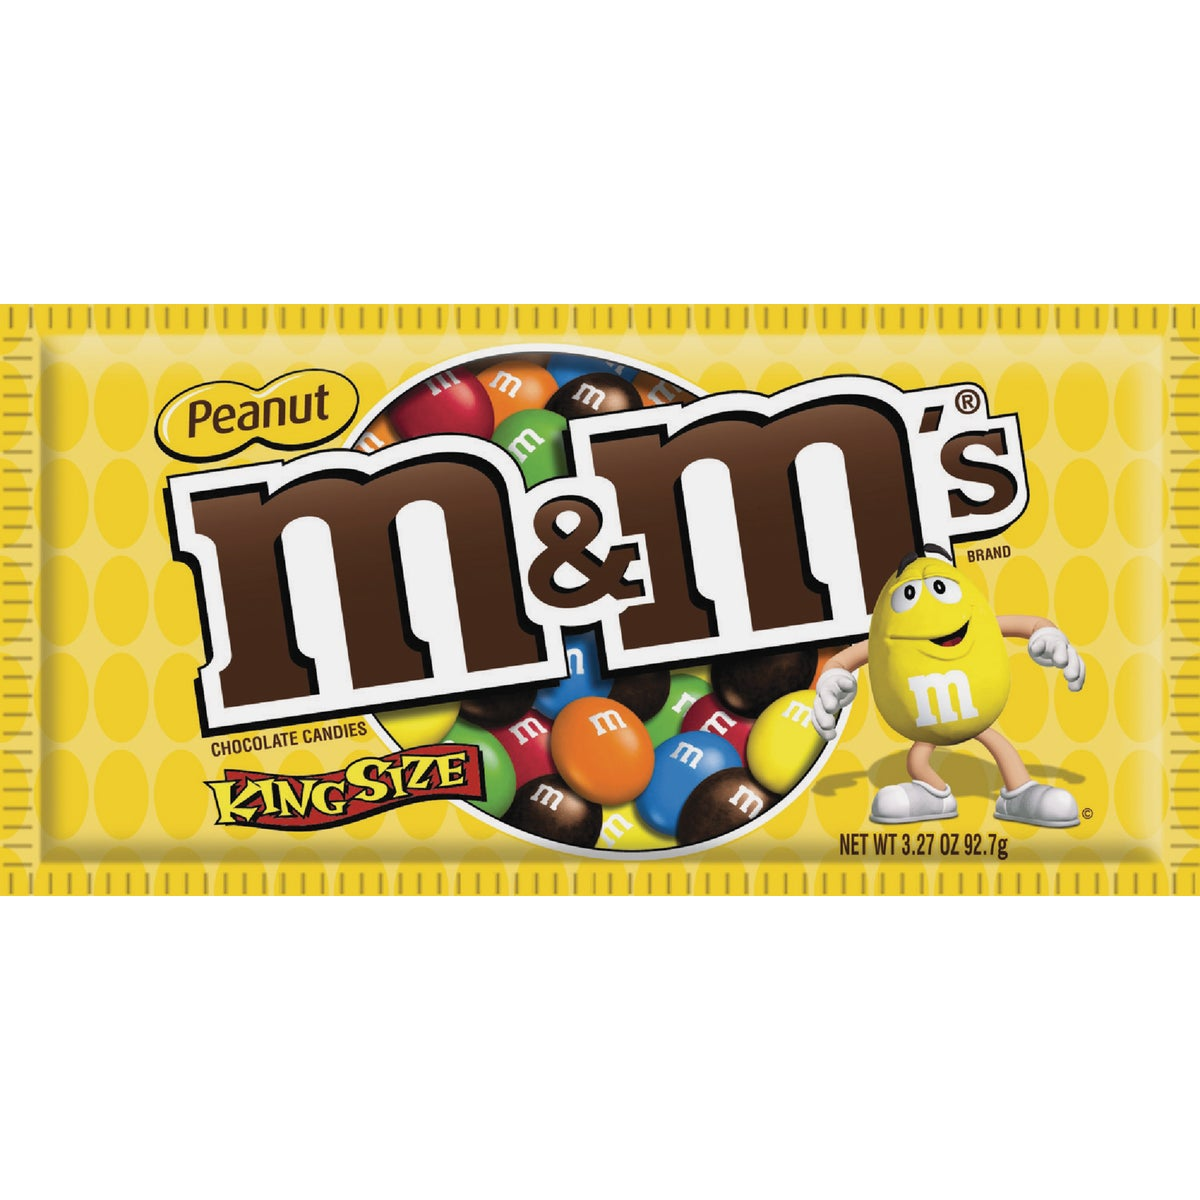 KING SIZE PEANUT M&M